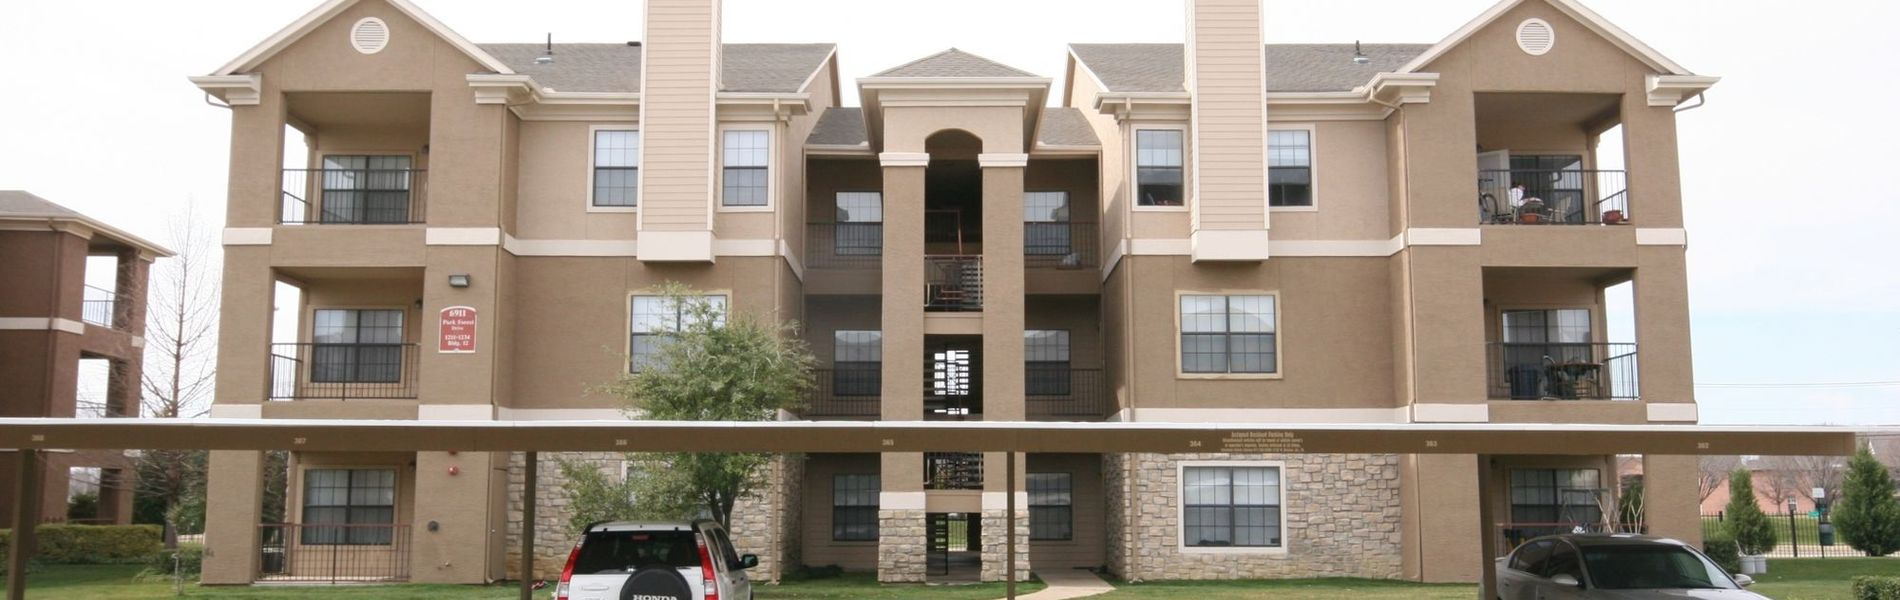 Apartments For Rent In Fort Worth, TX | Park Creek Apts   Home